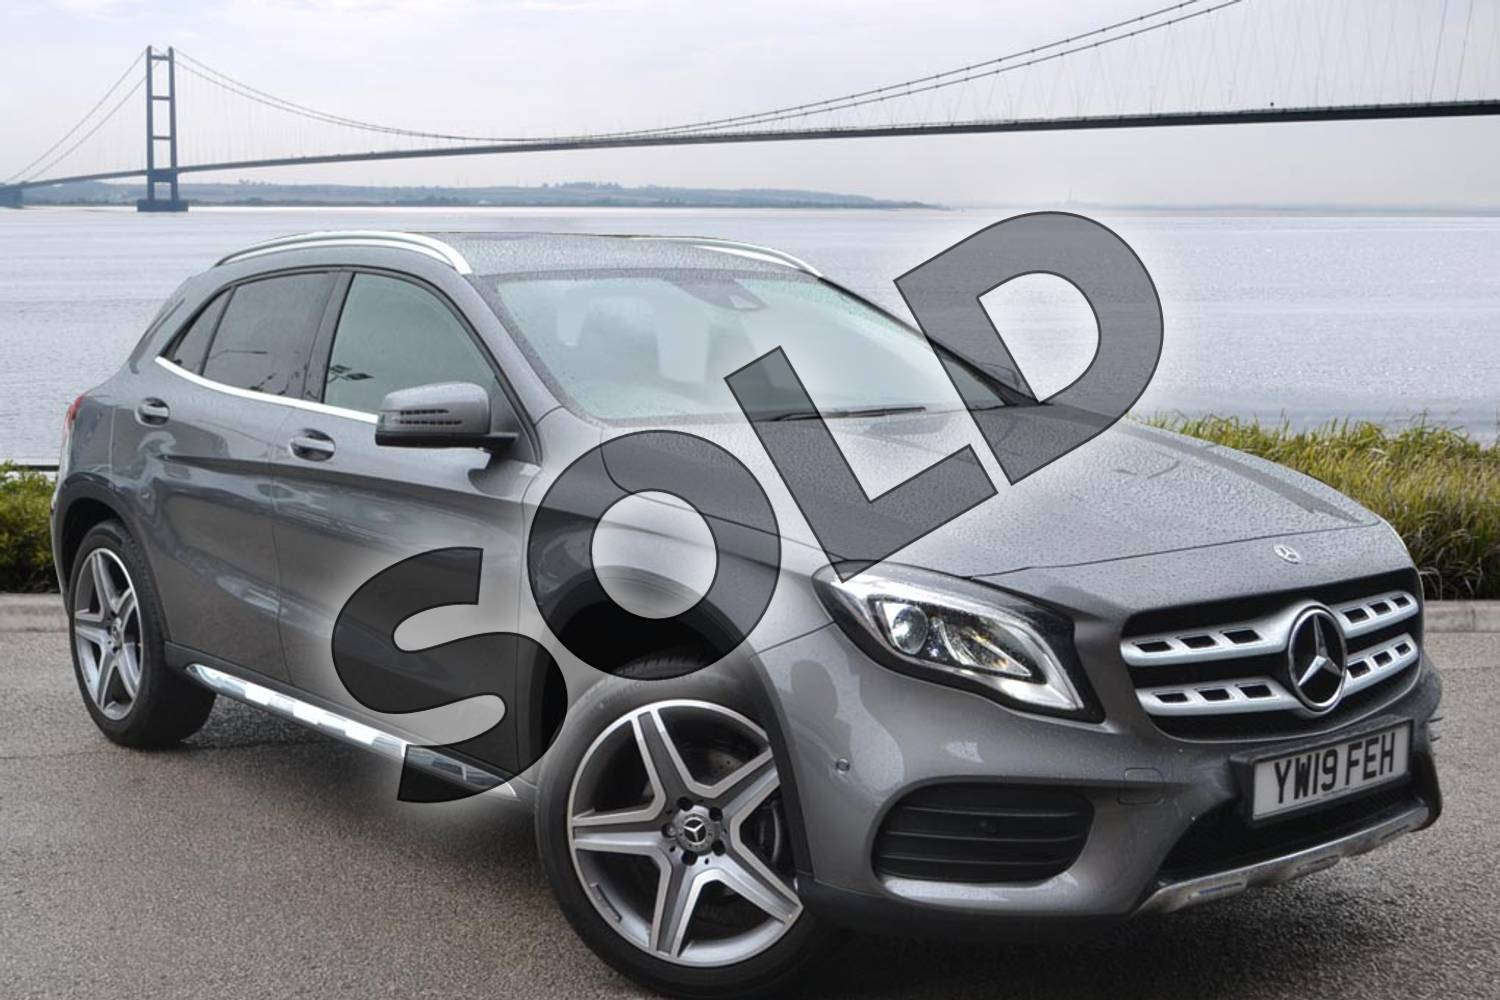 2019 Mercedes-Benz GLA Class Diesel Hatchback Diesel GLA 200d 4Matic AMG Line Premium 5dr Auto in Mountain Grey Metallic at Mercedes-Benz of Hull